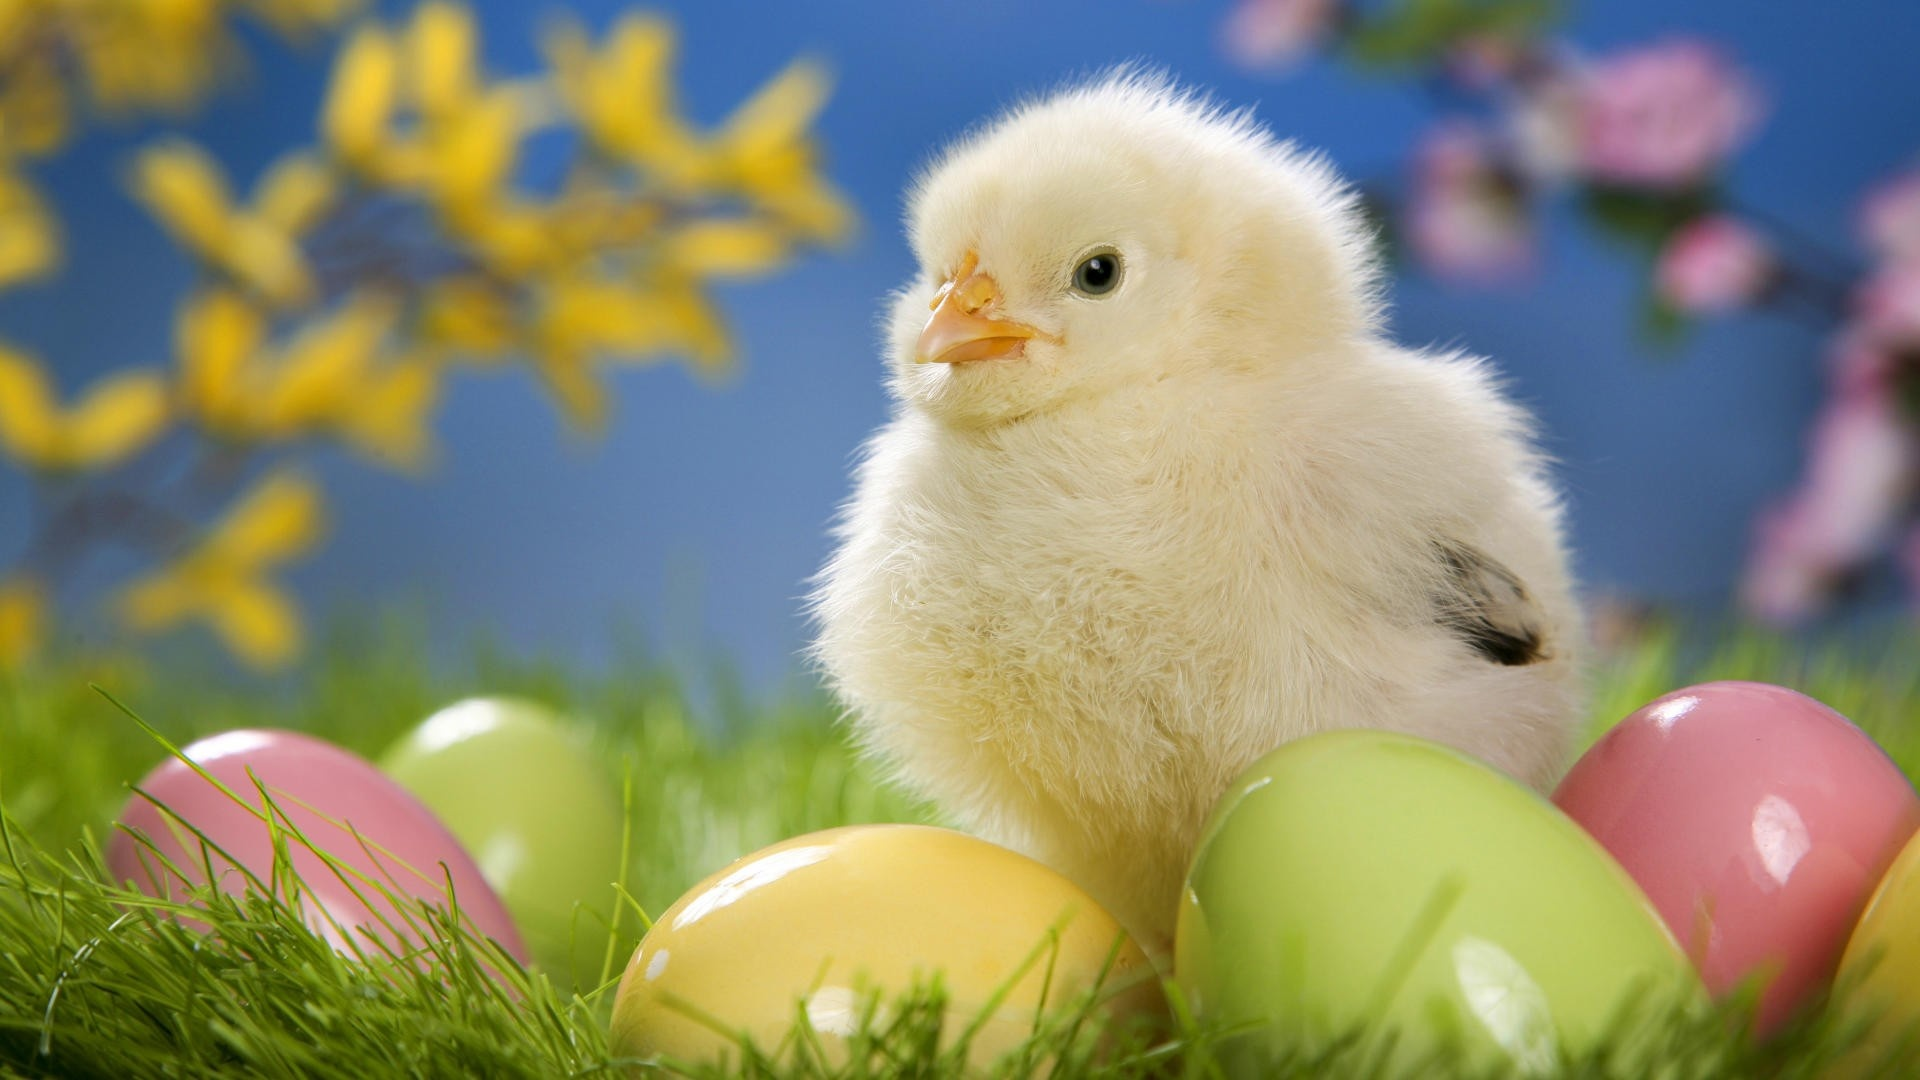 Sweet Easter Chicken Wallpapers   1920x1080   288506 1920x1080